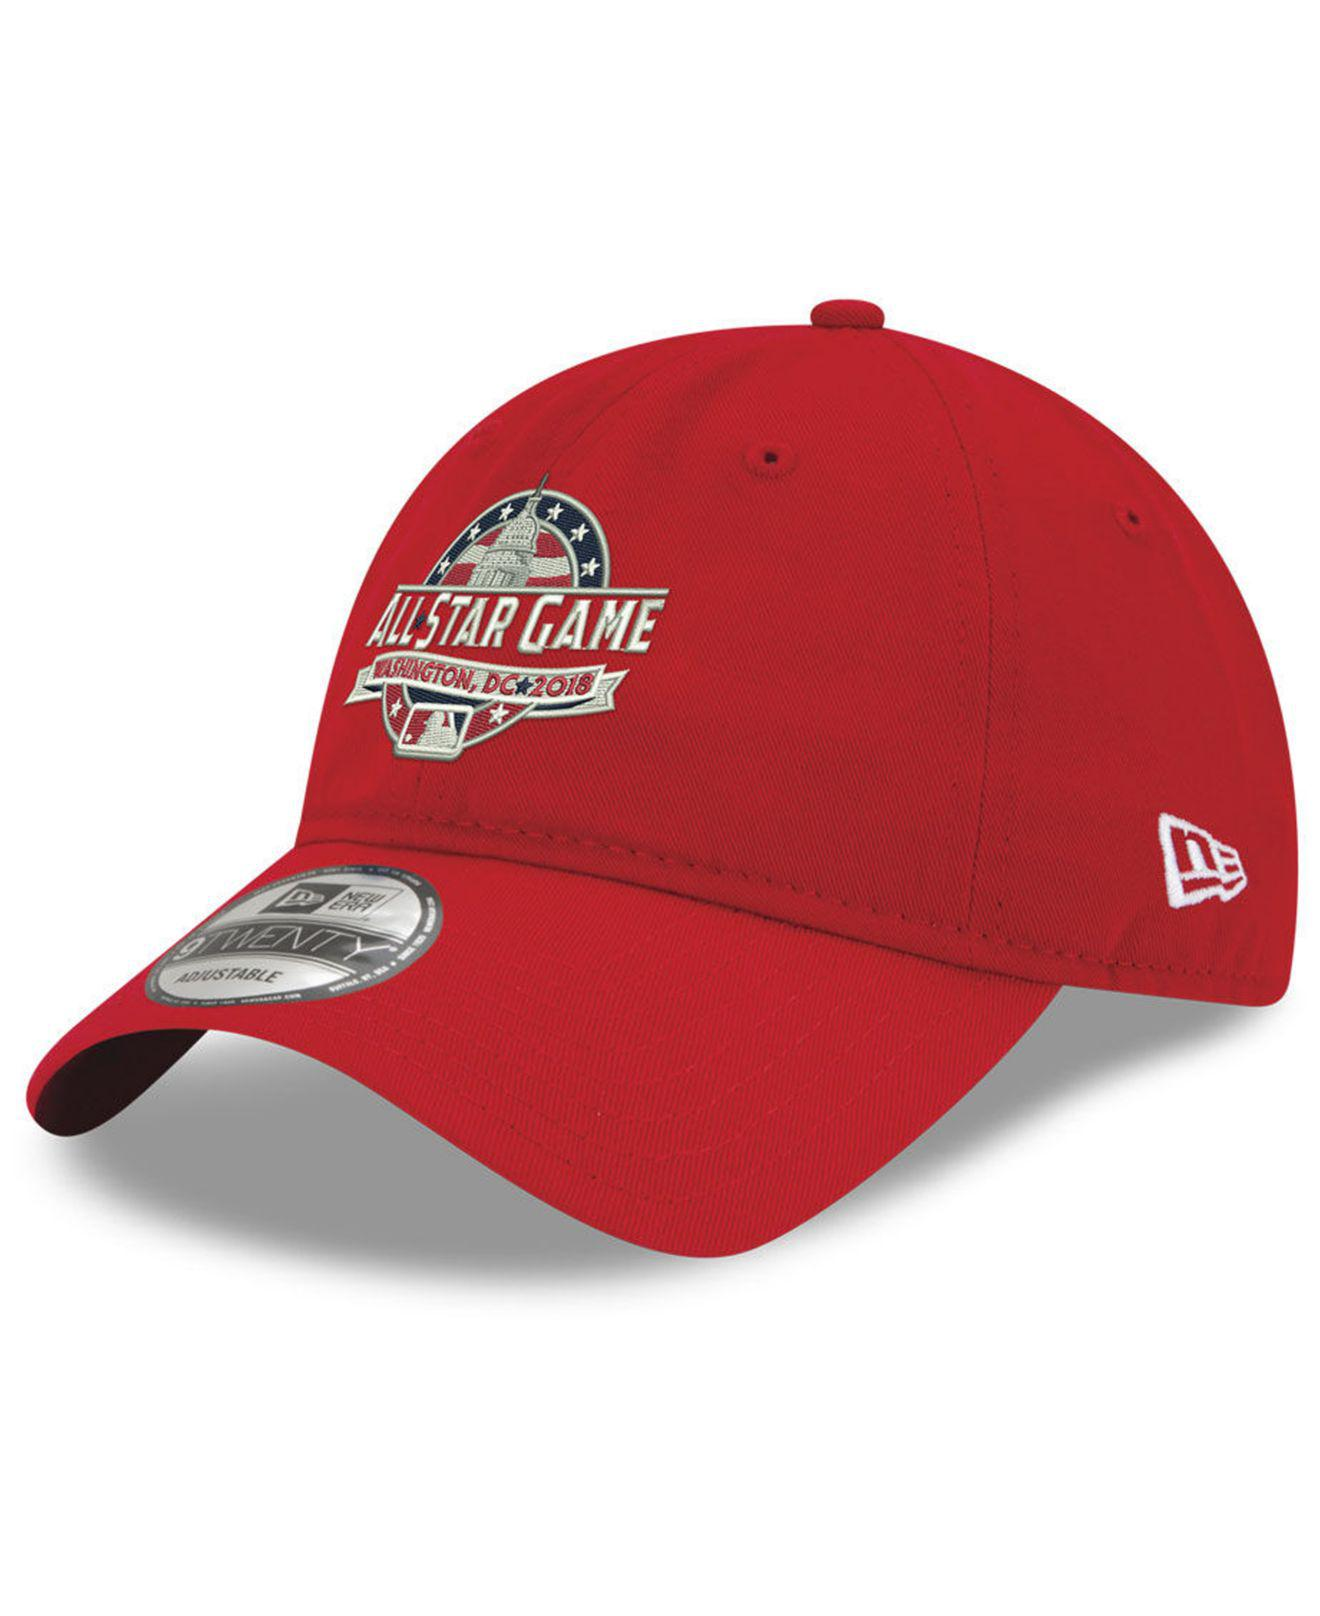 official photos 894ce f63cf sweden lyst ktz 2018 mlb all star game 9twenty cap in red for men 1aadc  9f044